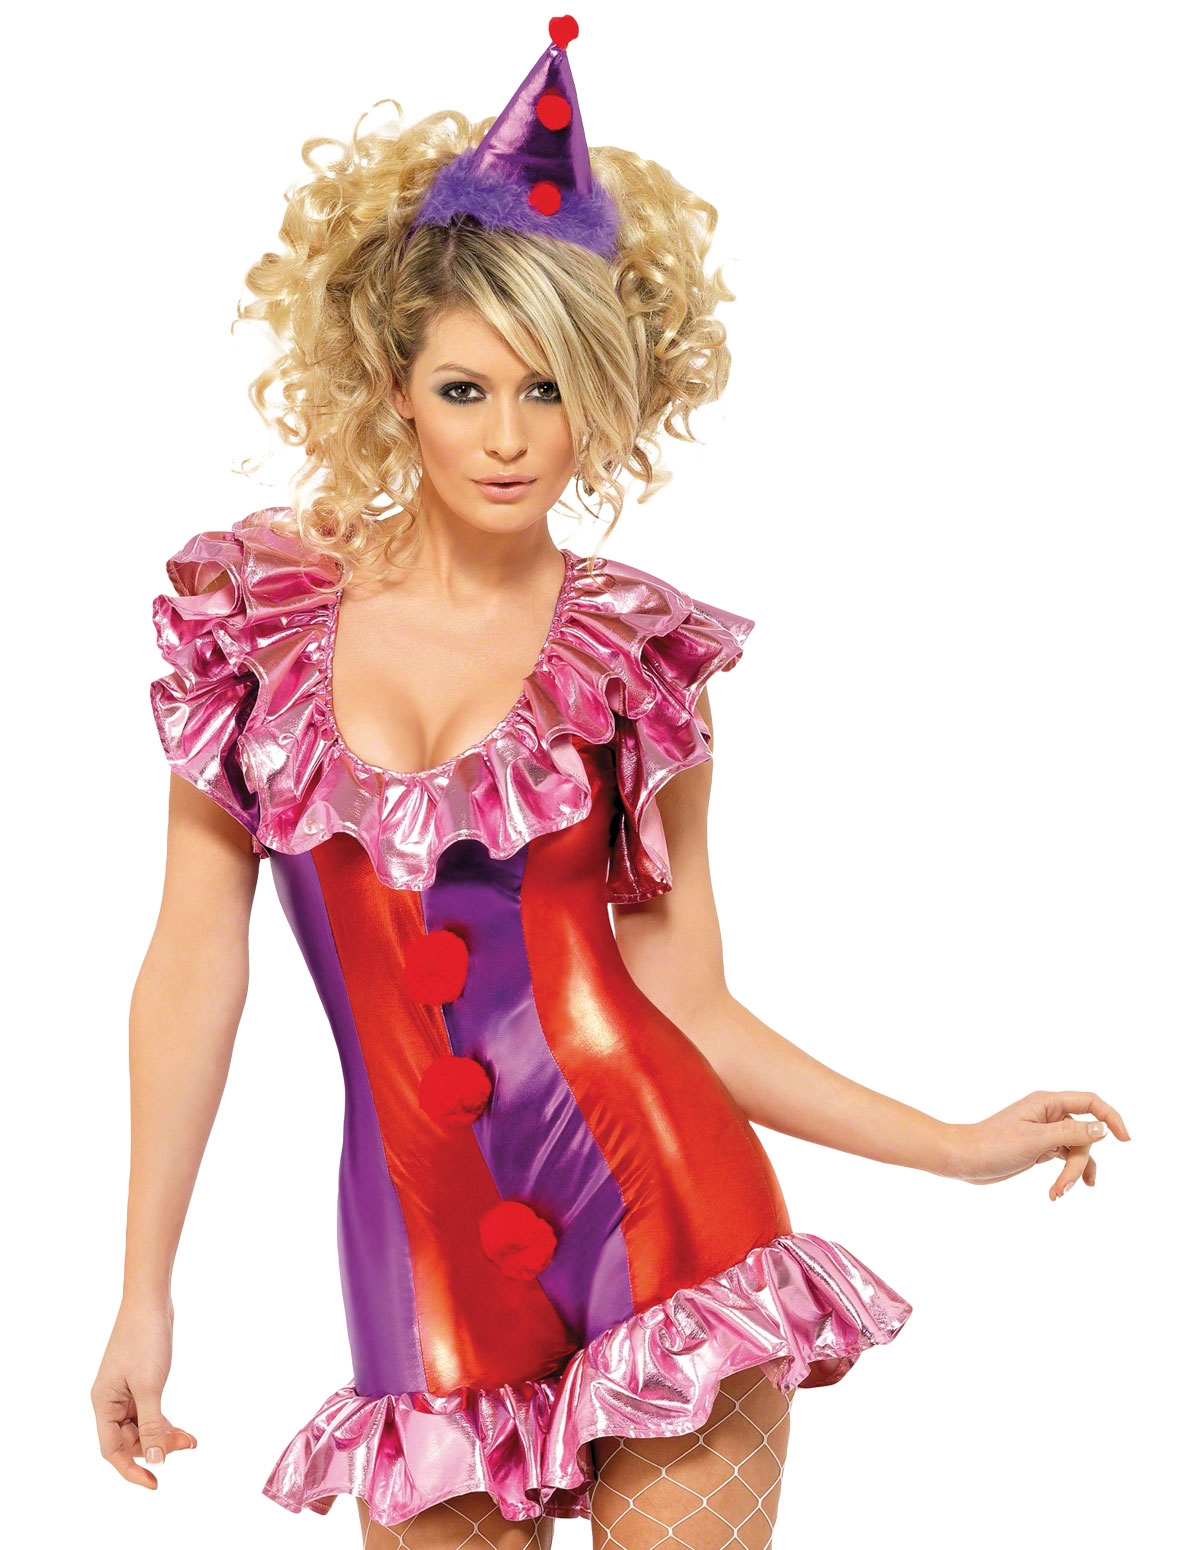 Playtime Clown Costume